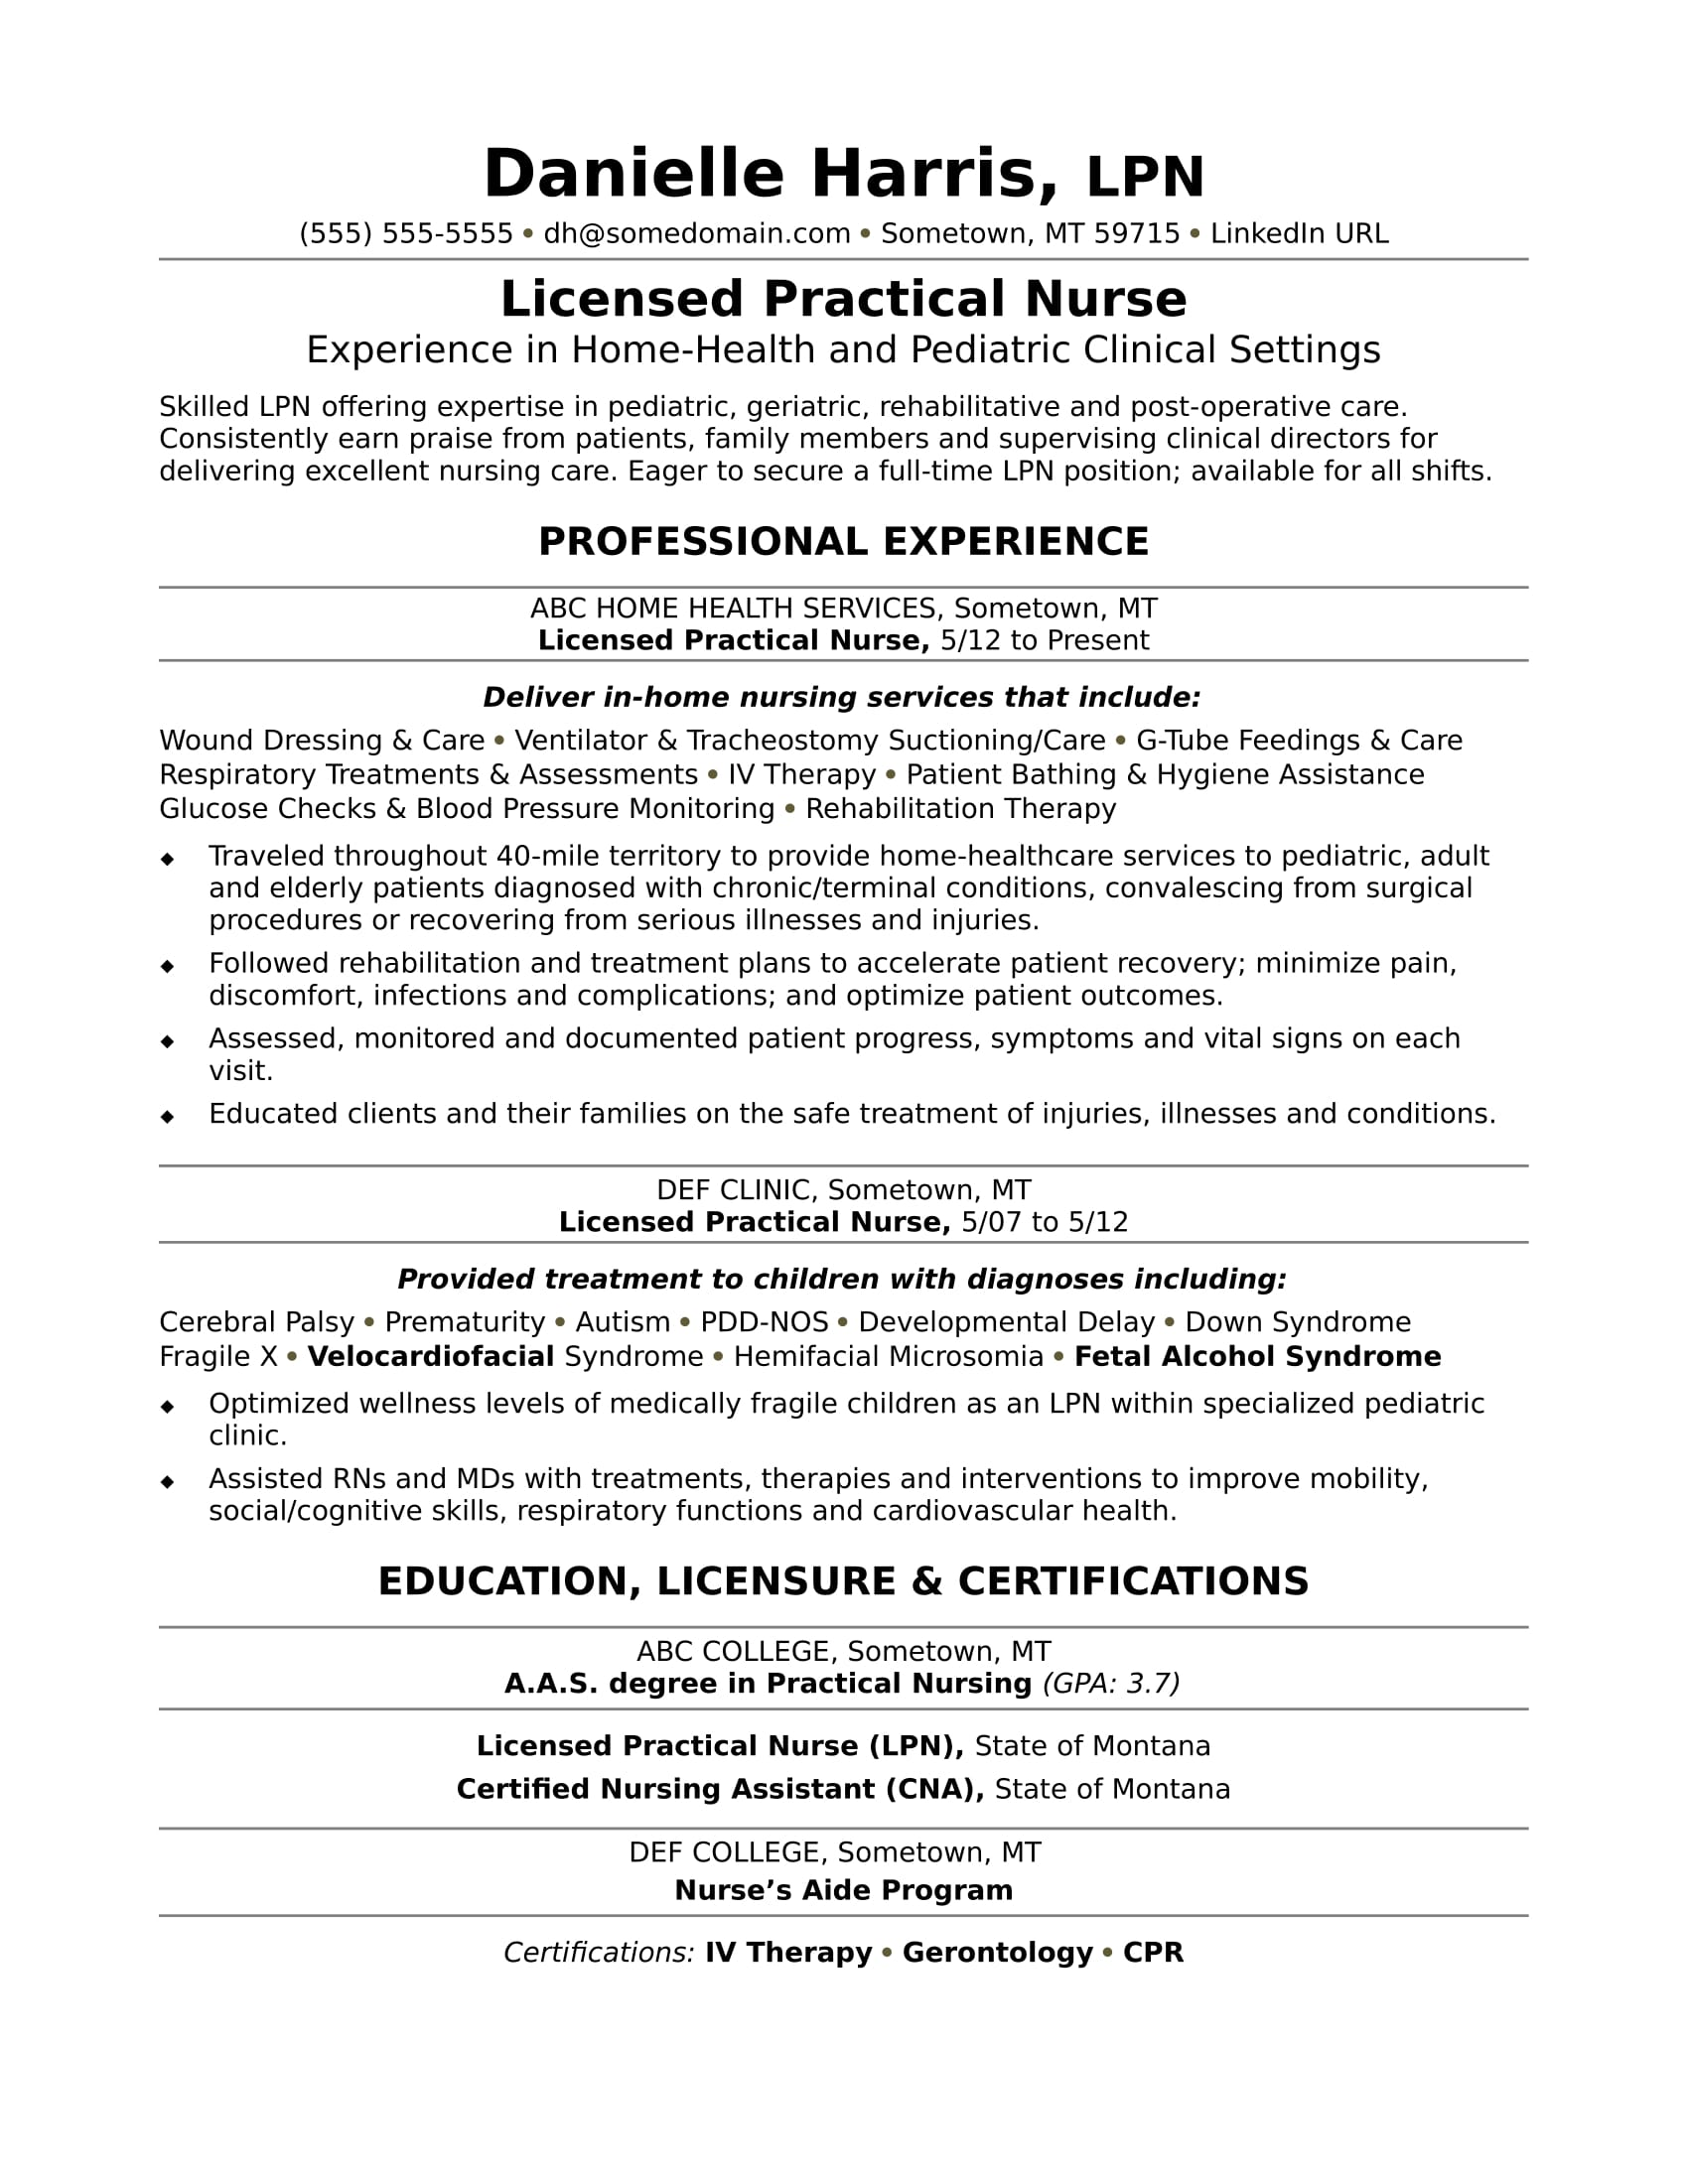 Licensed Practical Nurse Resume Sample Monstercom - Example-of-nursing-resume